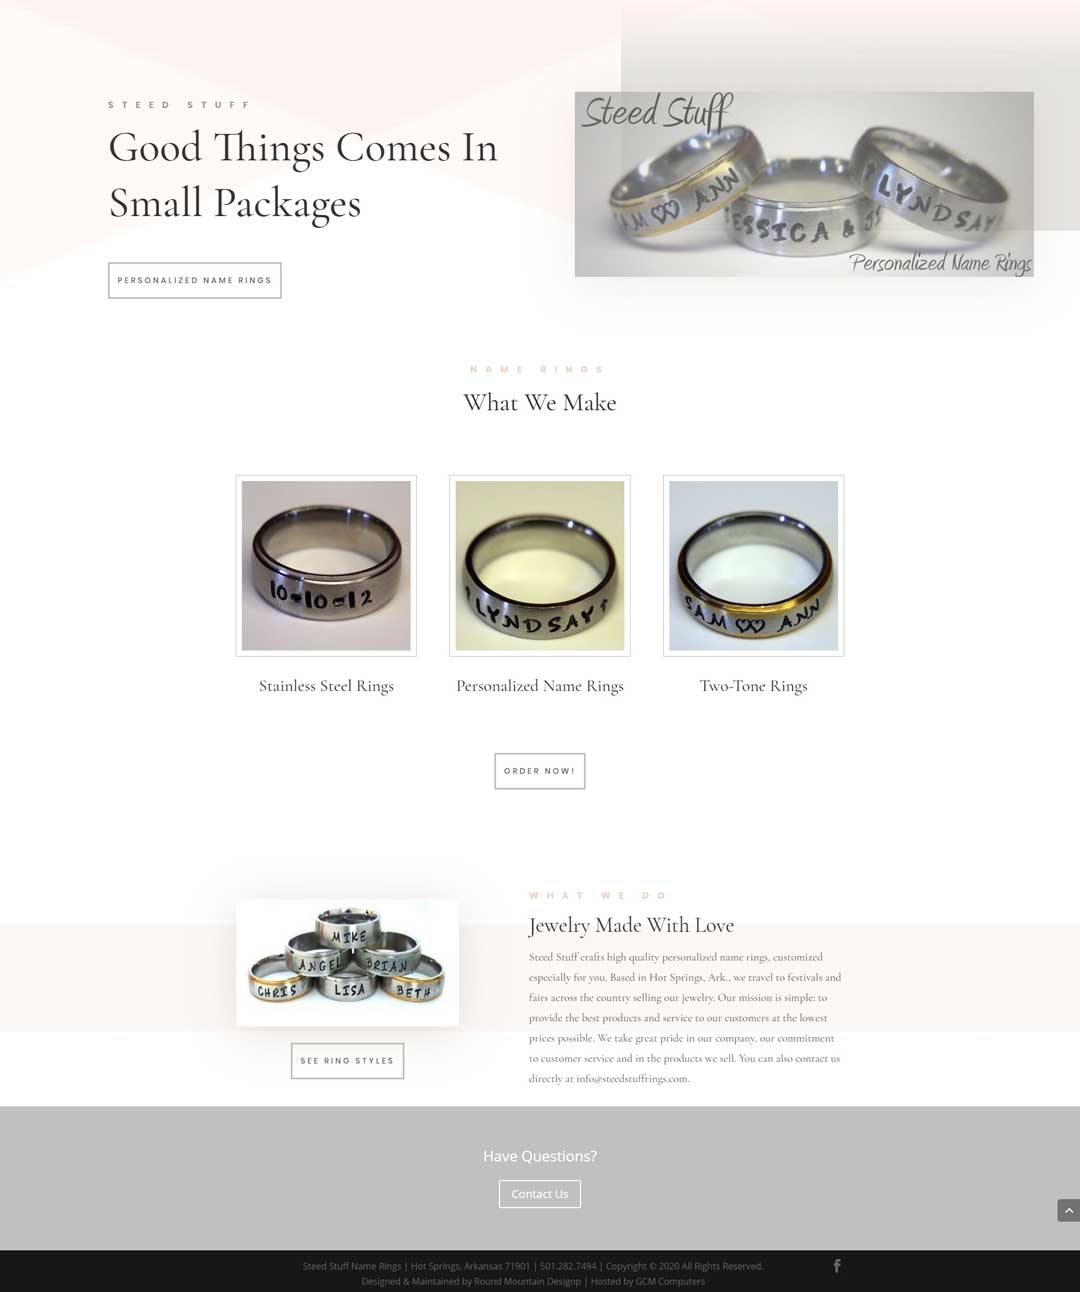 Steed Stuff Jewelry Website design